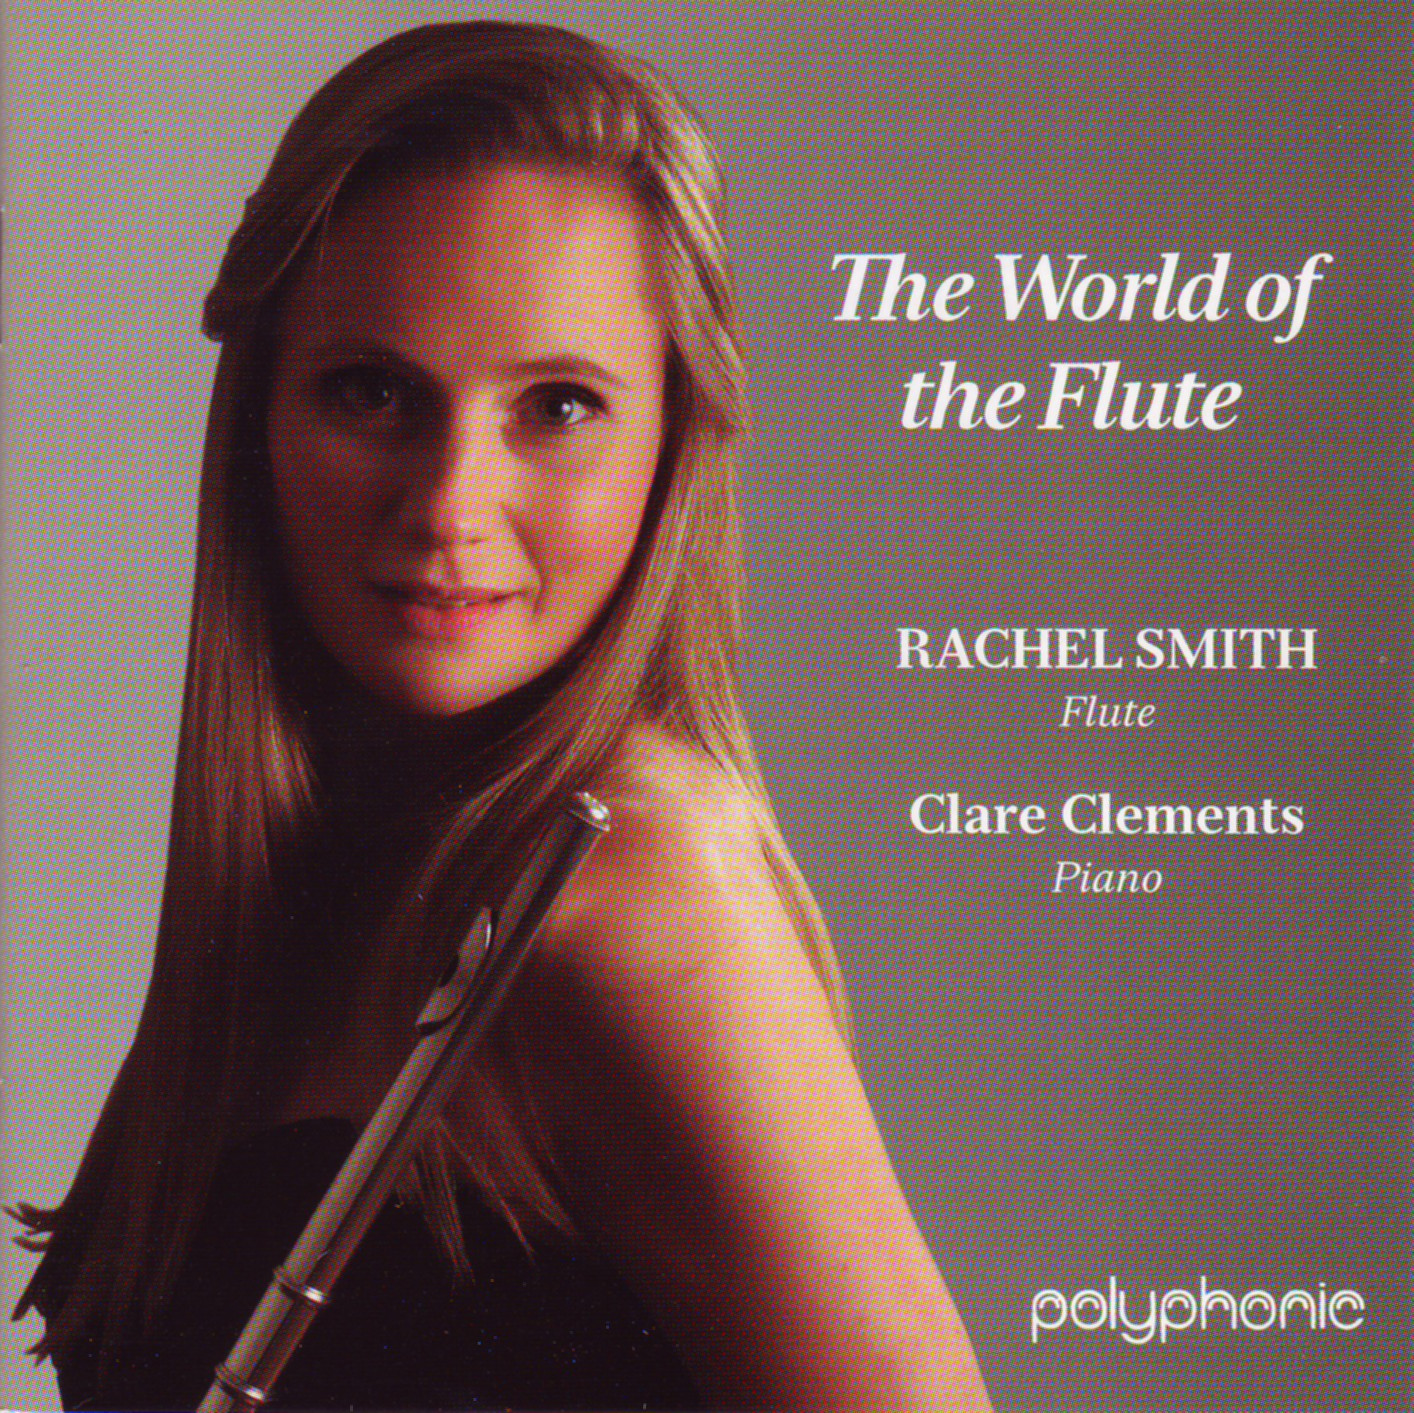 The World of the Flute